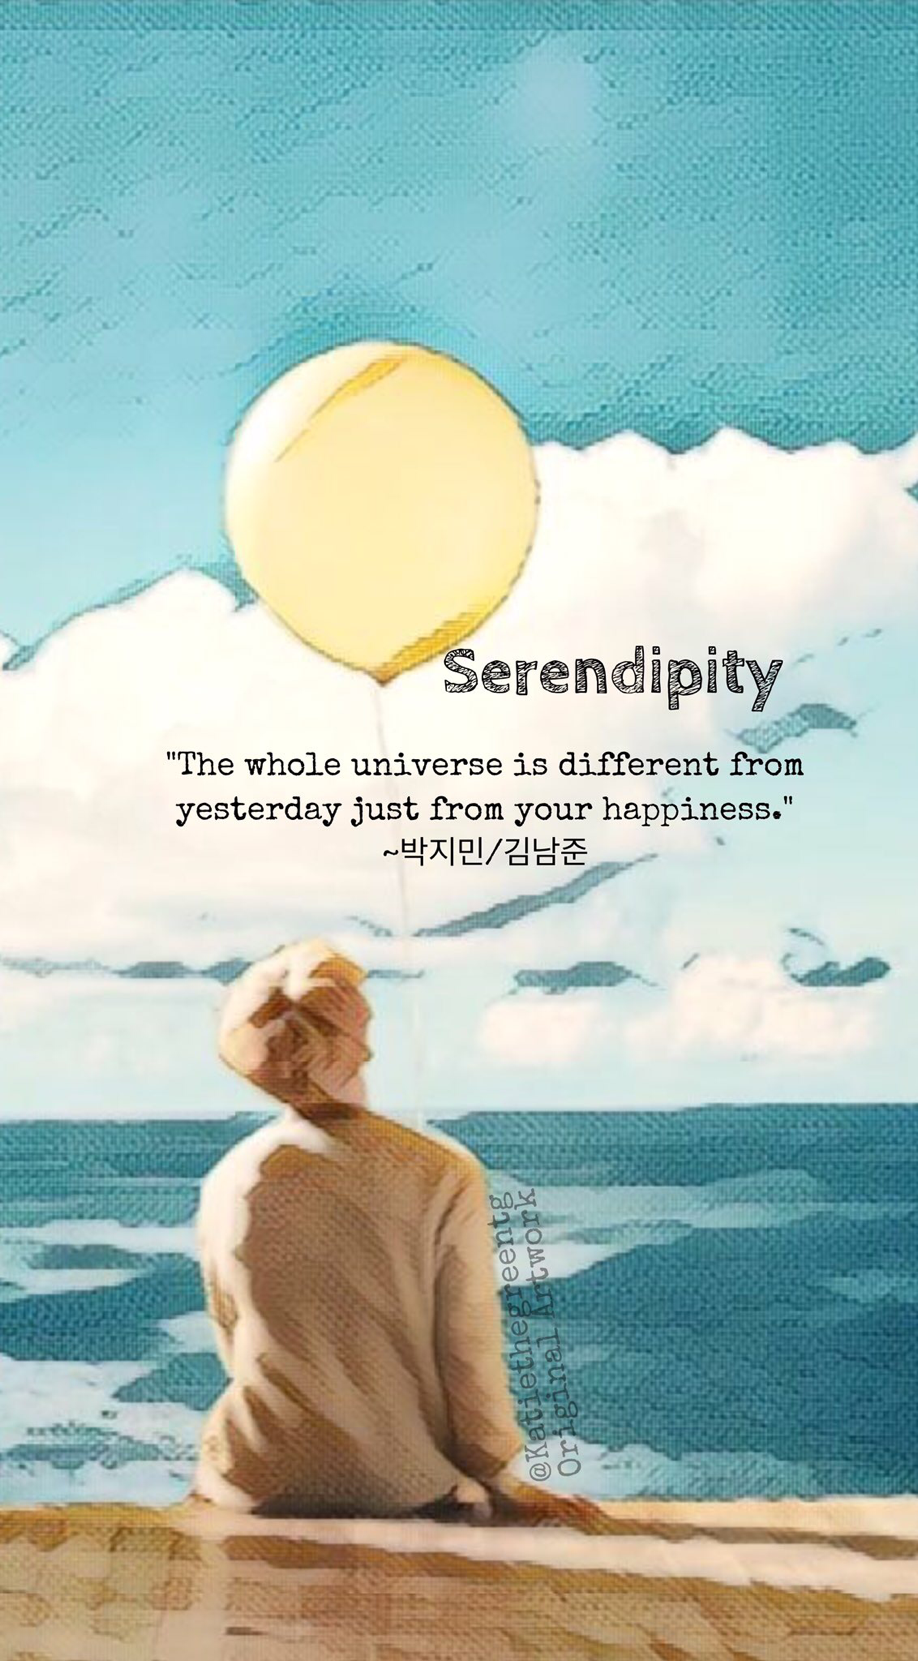 Love Yourself Quotes Wallpaper : Bts wallpaper serendipity Jimin her loveyourself love yourself BTS ? Pinterest Bts ...